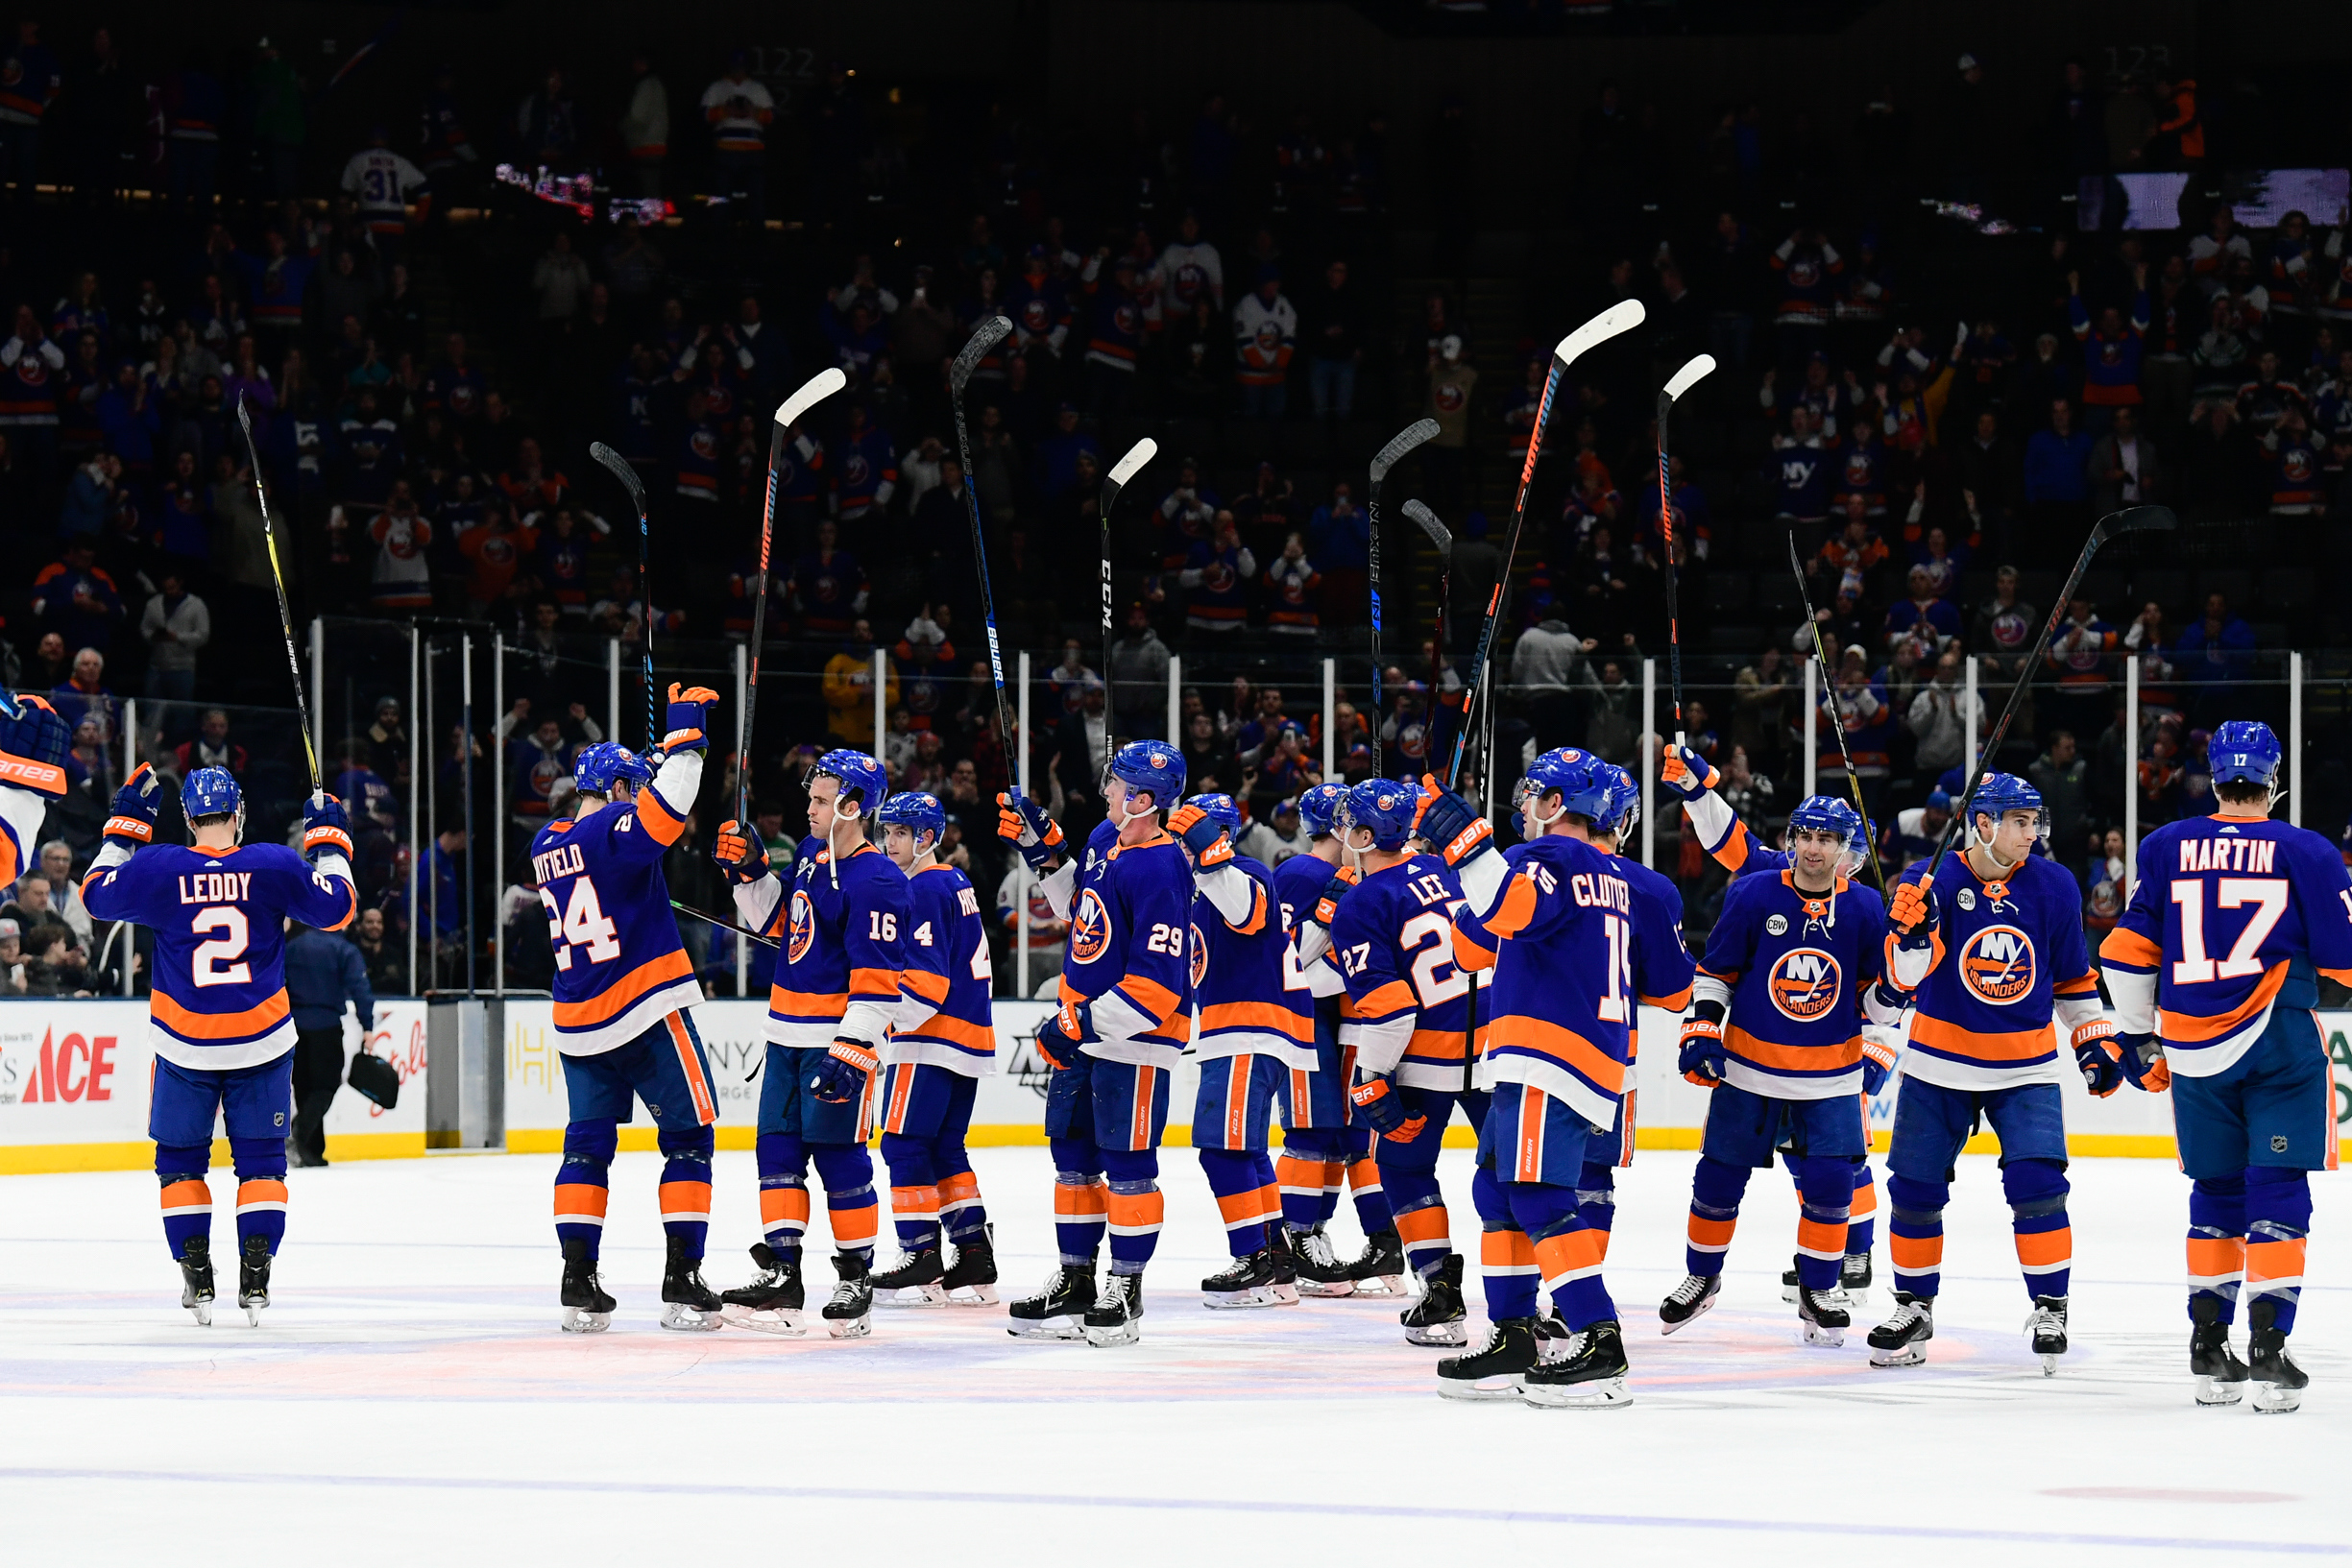 Mar 11, 2019; Uniondale, NY, USA; The New York Islanders react to fans after winning 2-0 against the Columbus Blue Jackets at Nassau Veterans Memorial Coliseum. Mandatory Credit: Catalina Fragoso-USA TODAY Sports